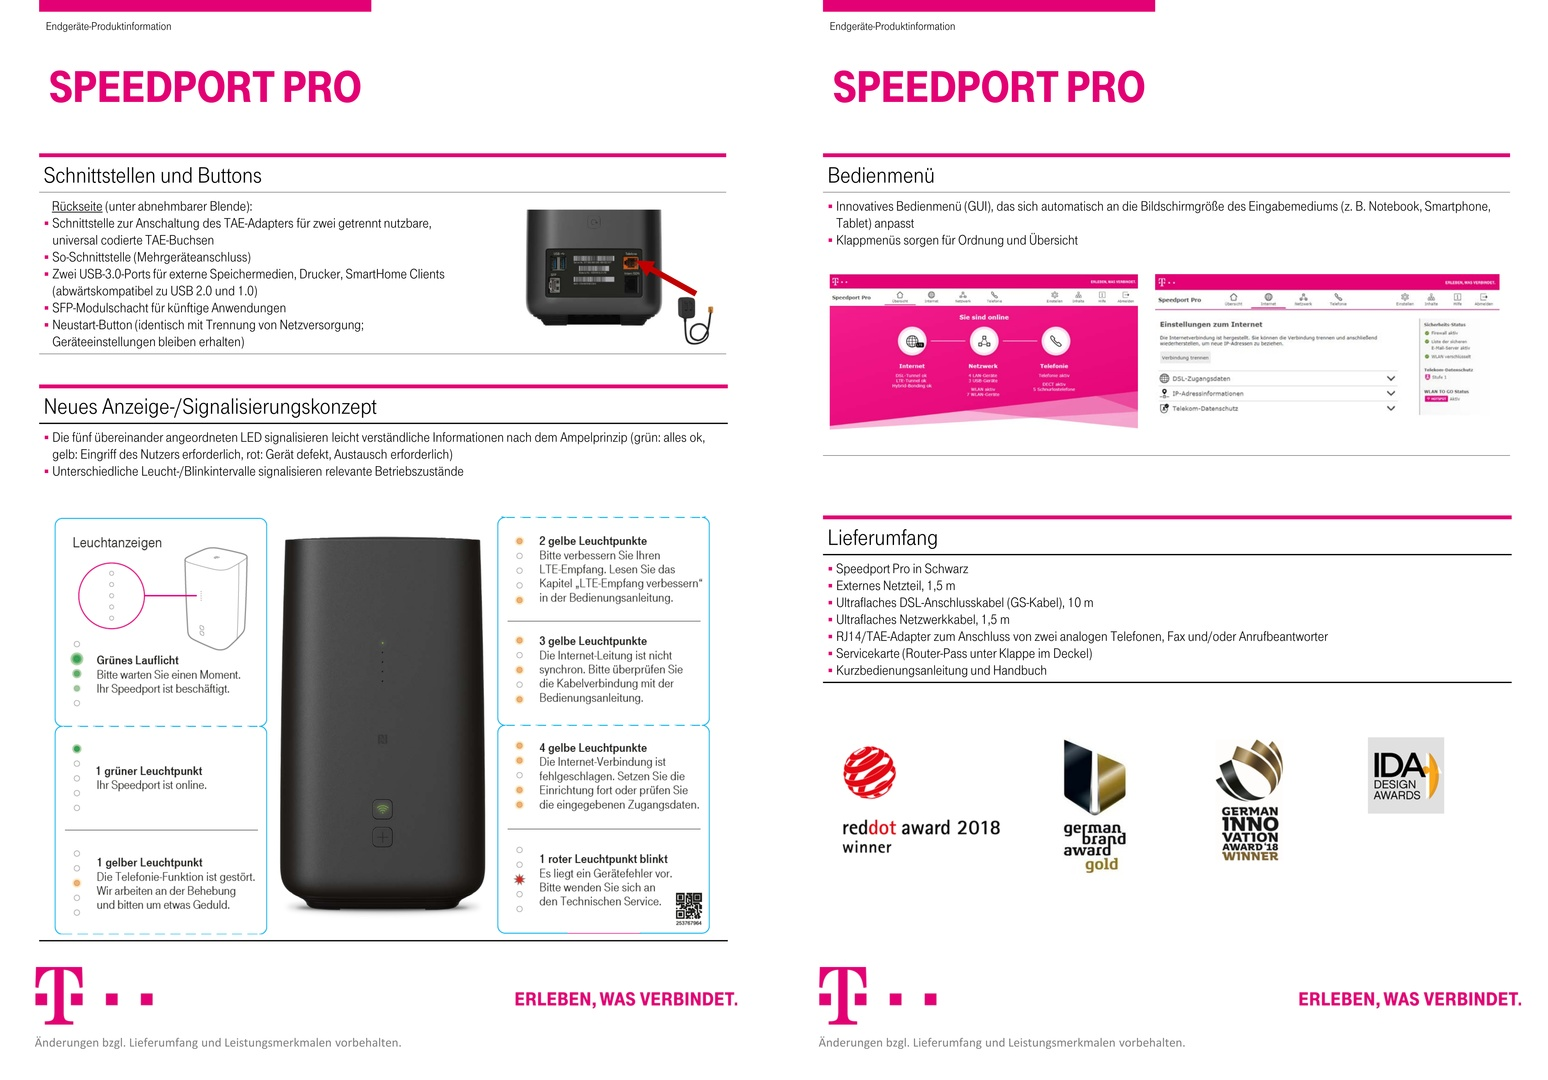 Datenblatt des Speedport Pro (2/2)